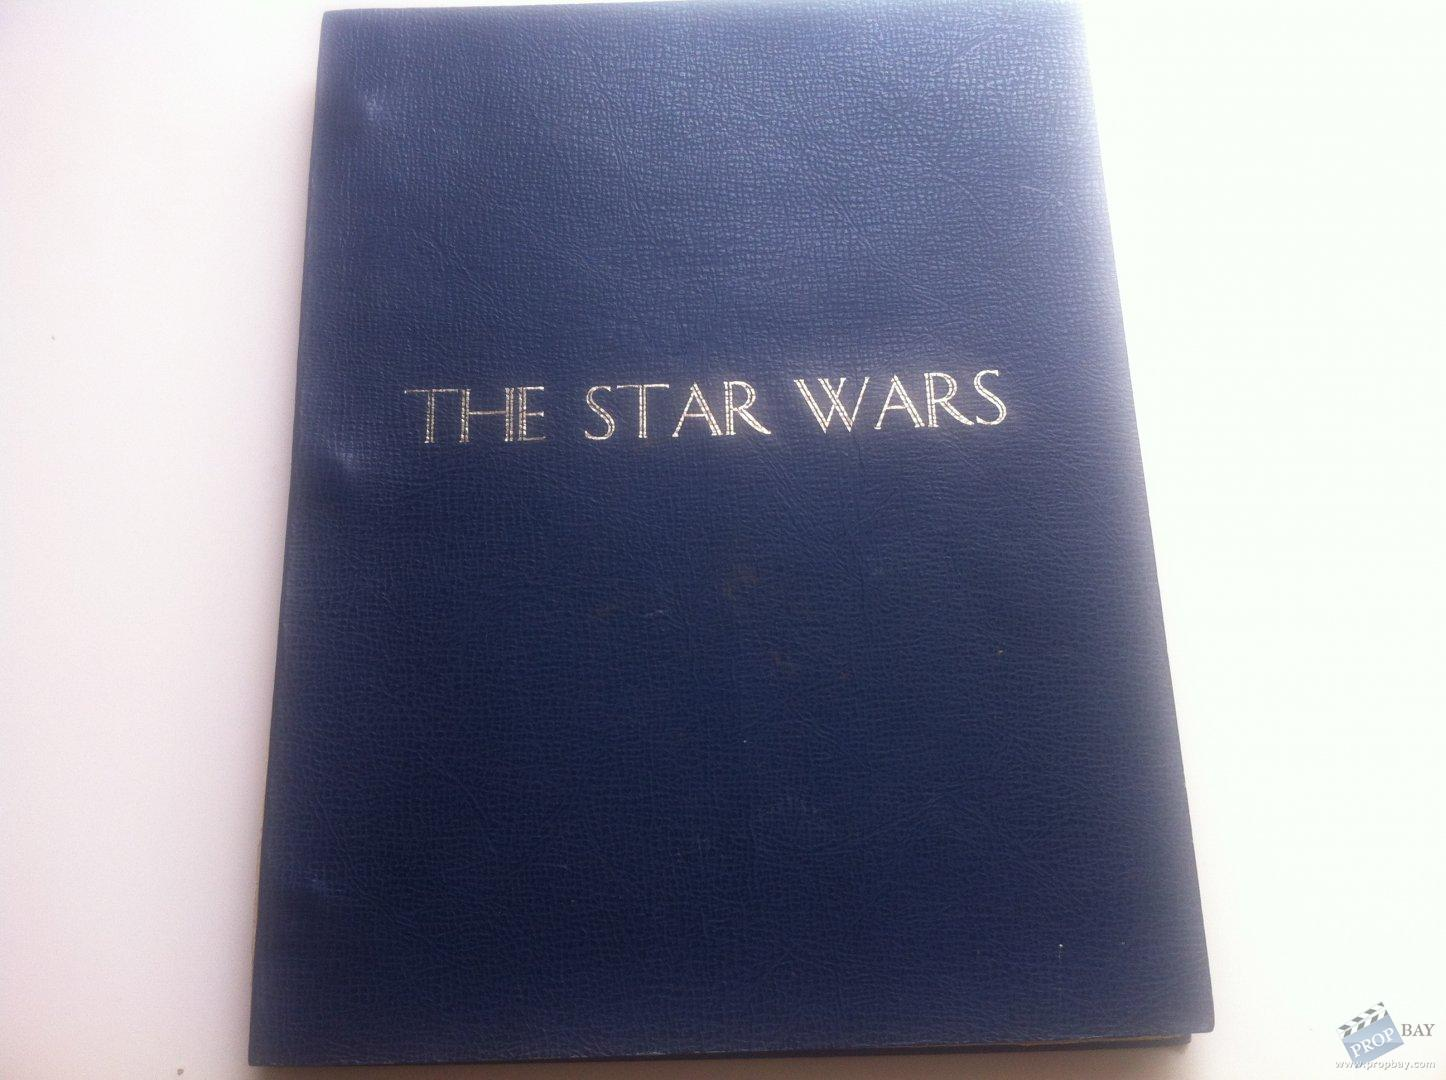 Star Wars Third Draft Script Film Production From Star Wars Episode Iv A New Hope 1977 Online Movie Memorabilia Archive And Marketplace Propbay Com